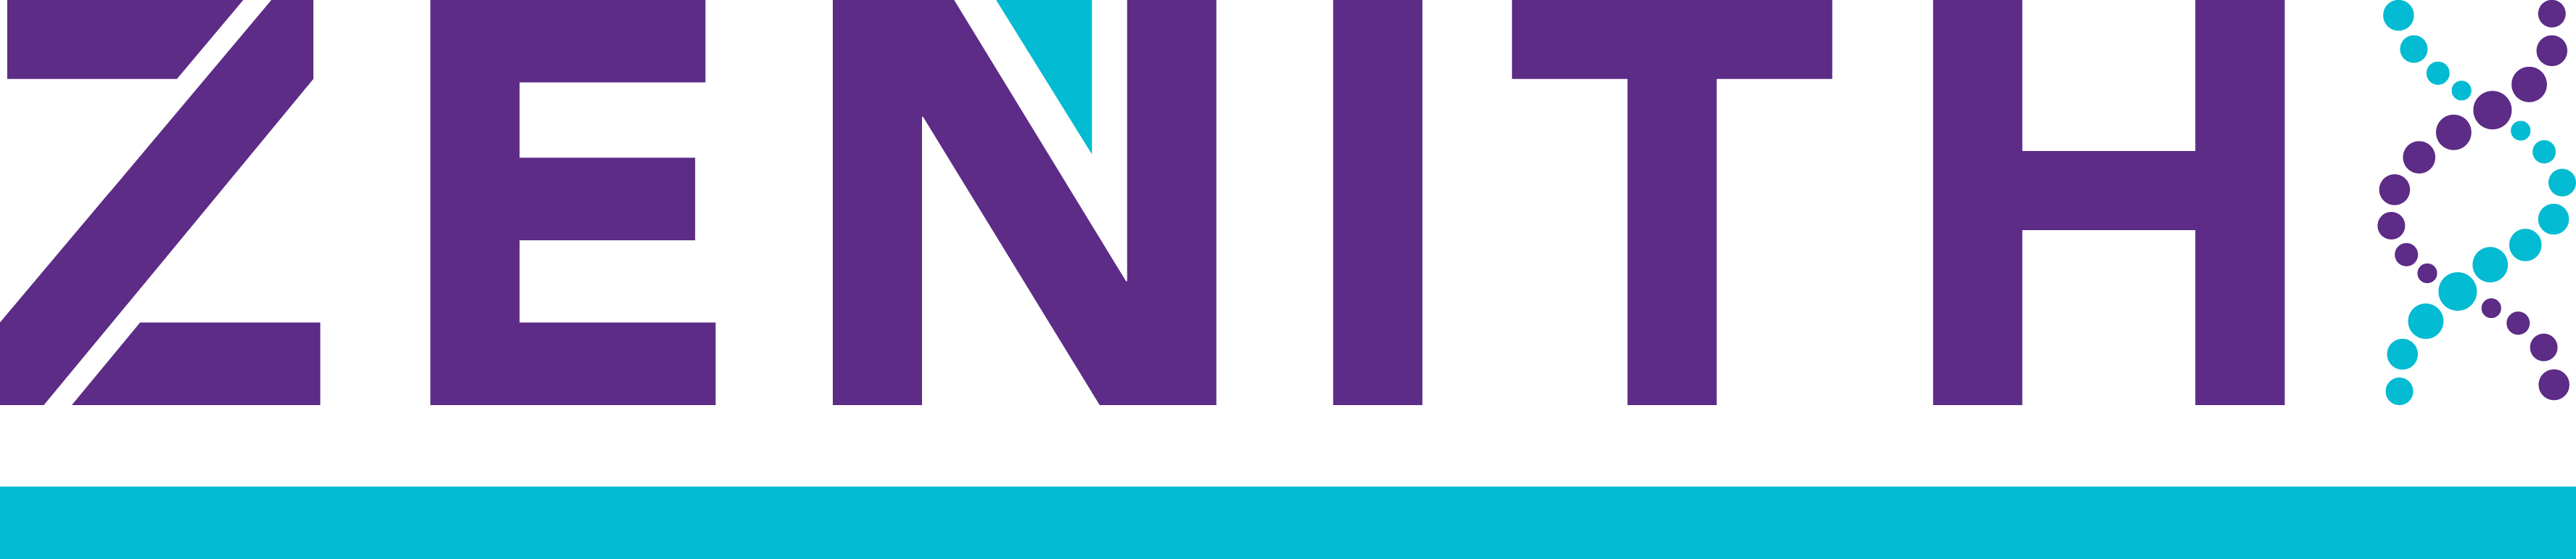 Zenith Announces Voting Results from the 2019 Annual and Special Meeting of Shareholders